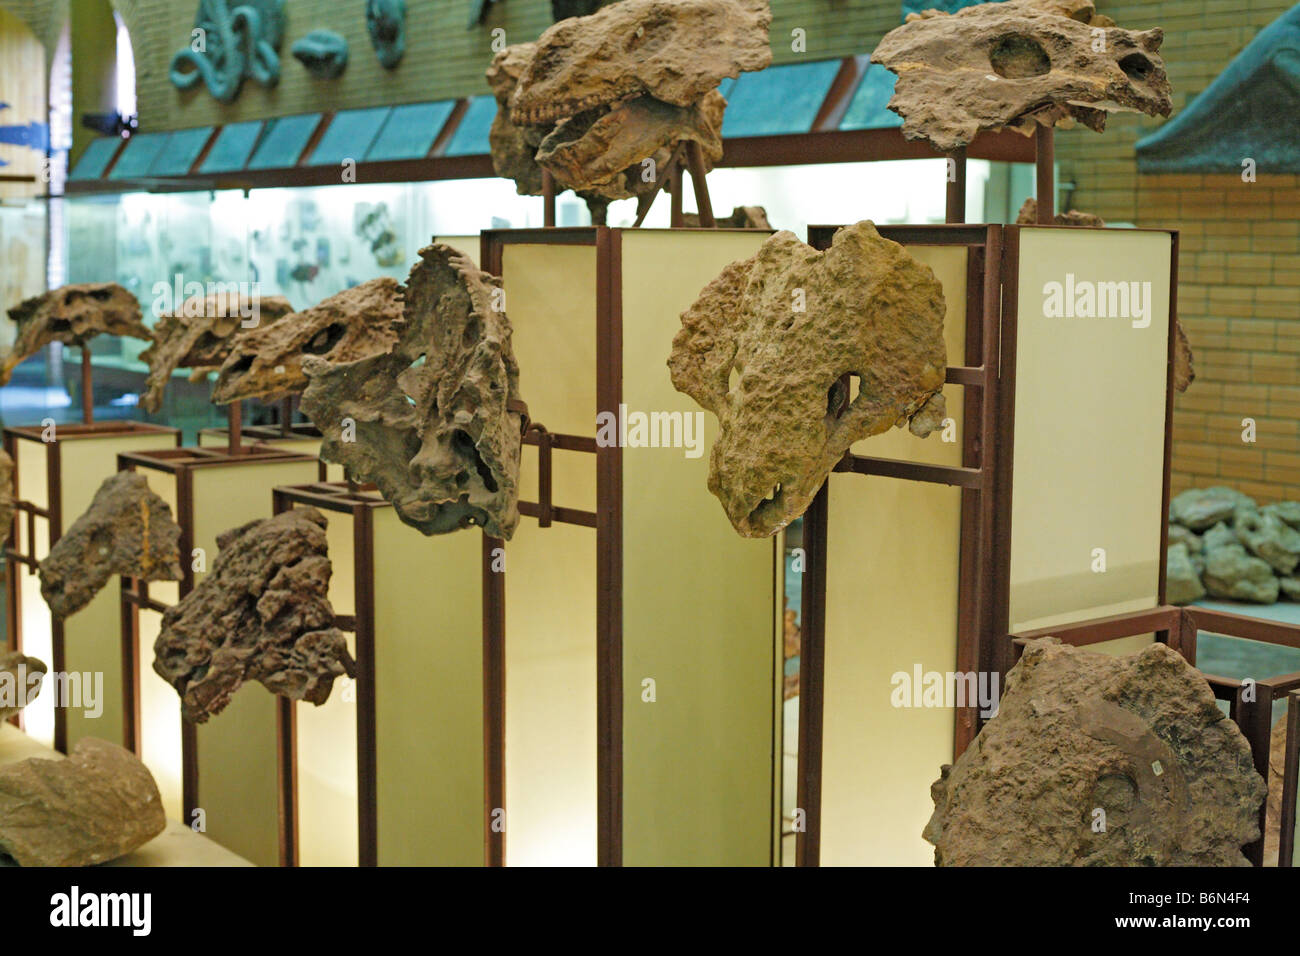 Palaeontology museum, Moscow, Russia - Stock Image